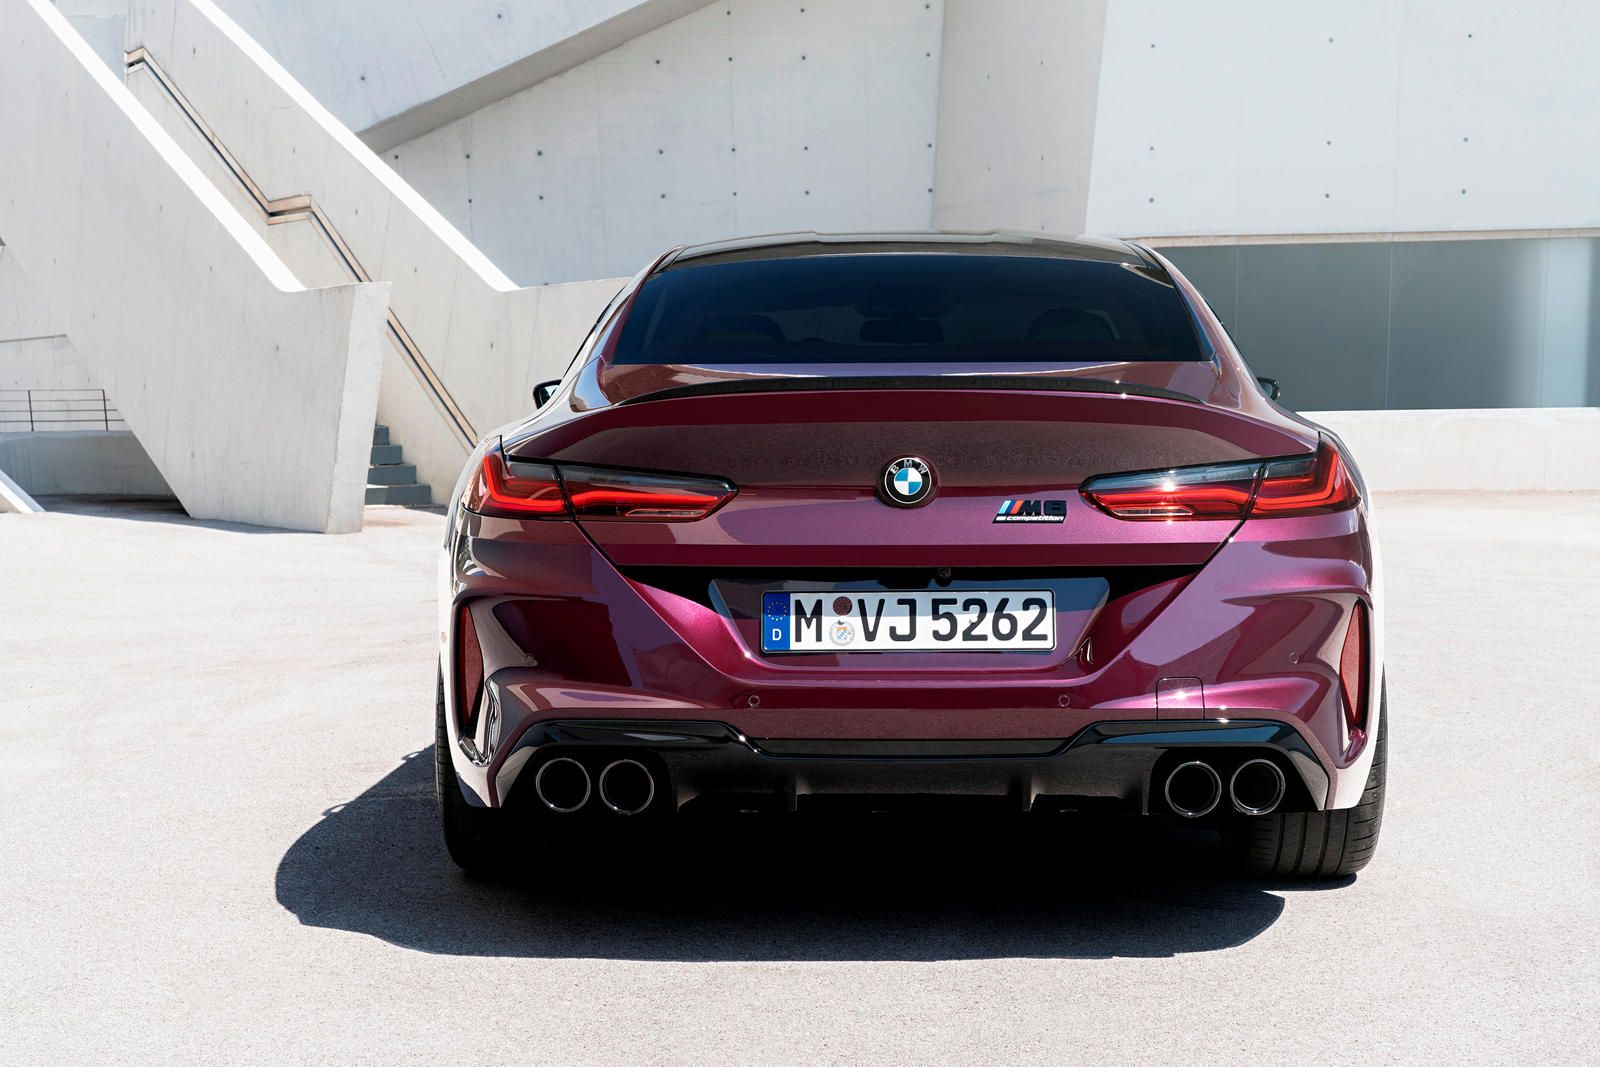 Rear View In 2020 Bmw Gran Coupe Bmw Dealer